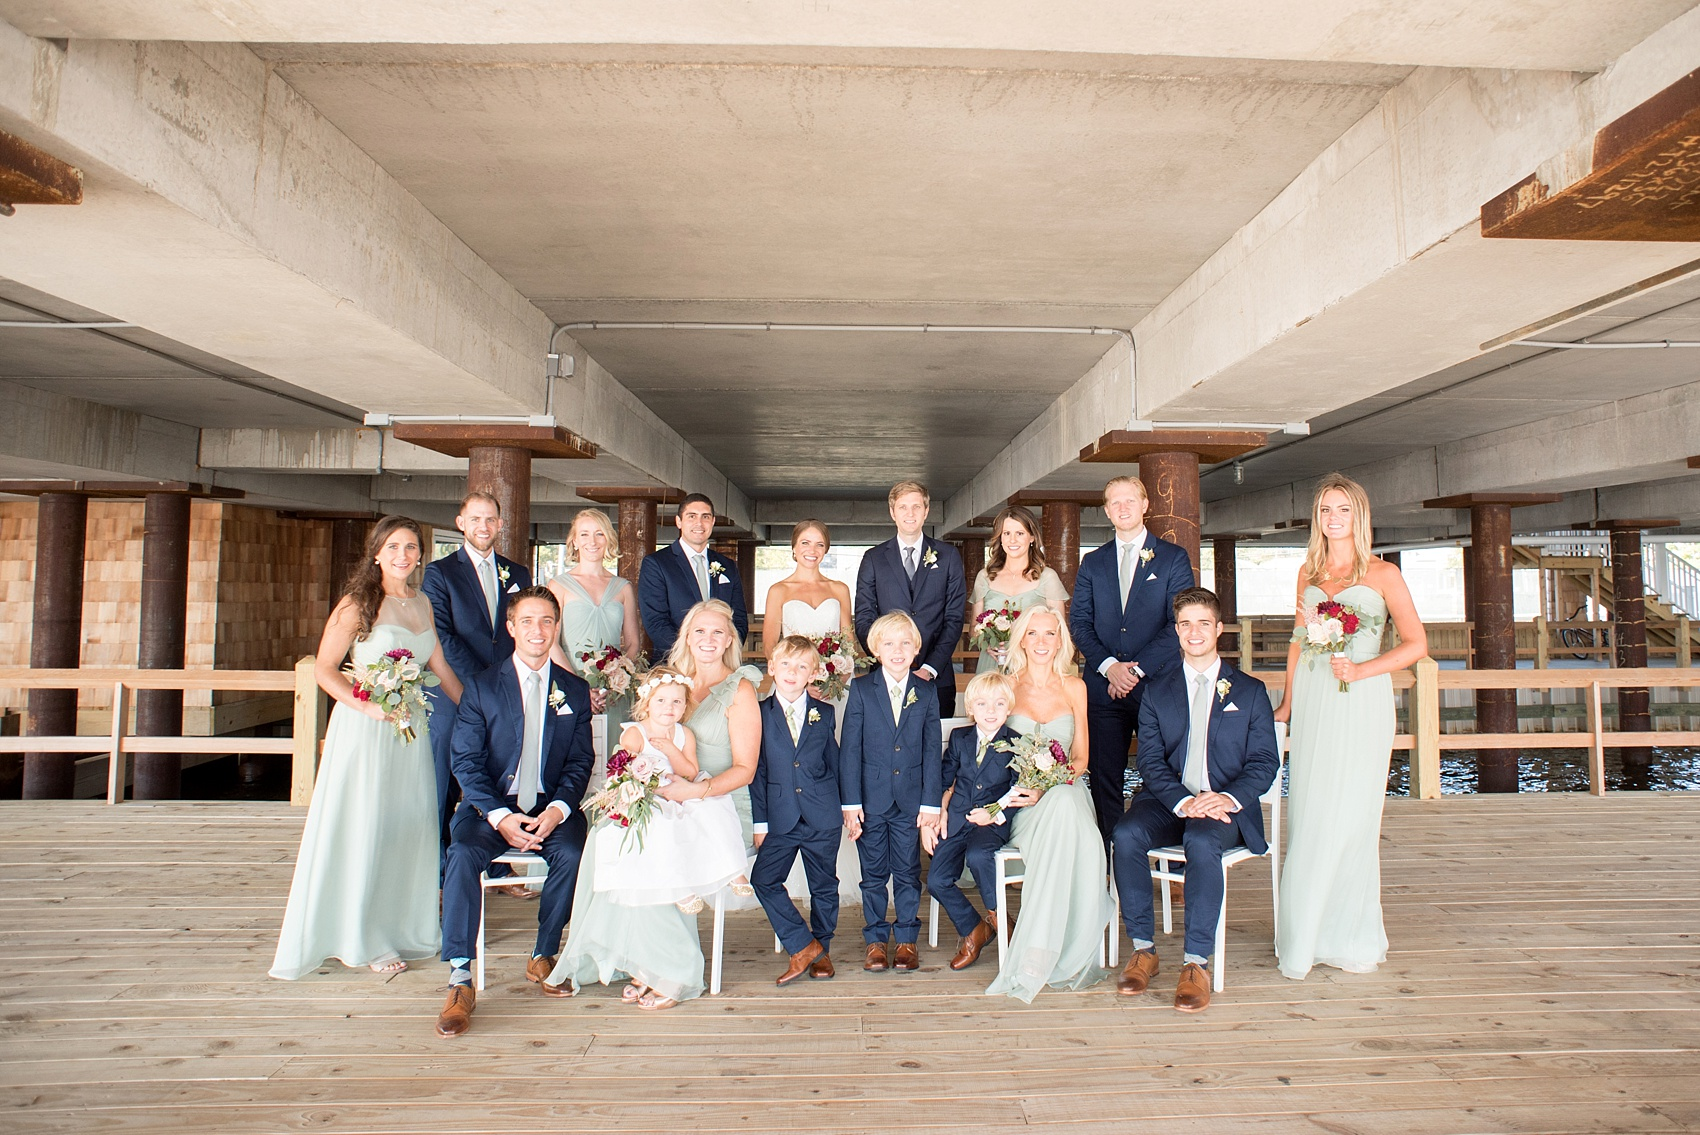 Mikkel Paige Photography photos of a Bay Head Yacht Club nautical wedding. The bride wore a white sweetheart gown and her bridesmaids wore mint green Amsale gowns. The groomsmen wore navy blue suits and grey ties.